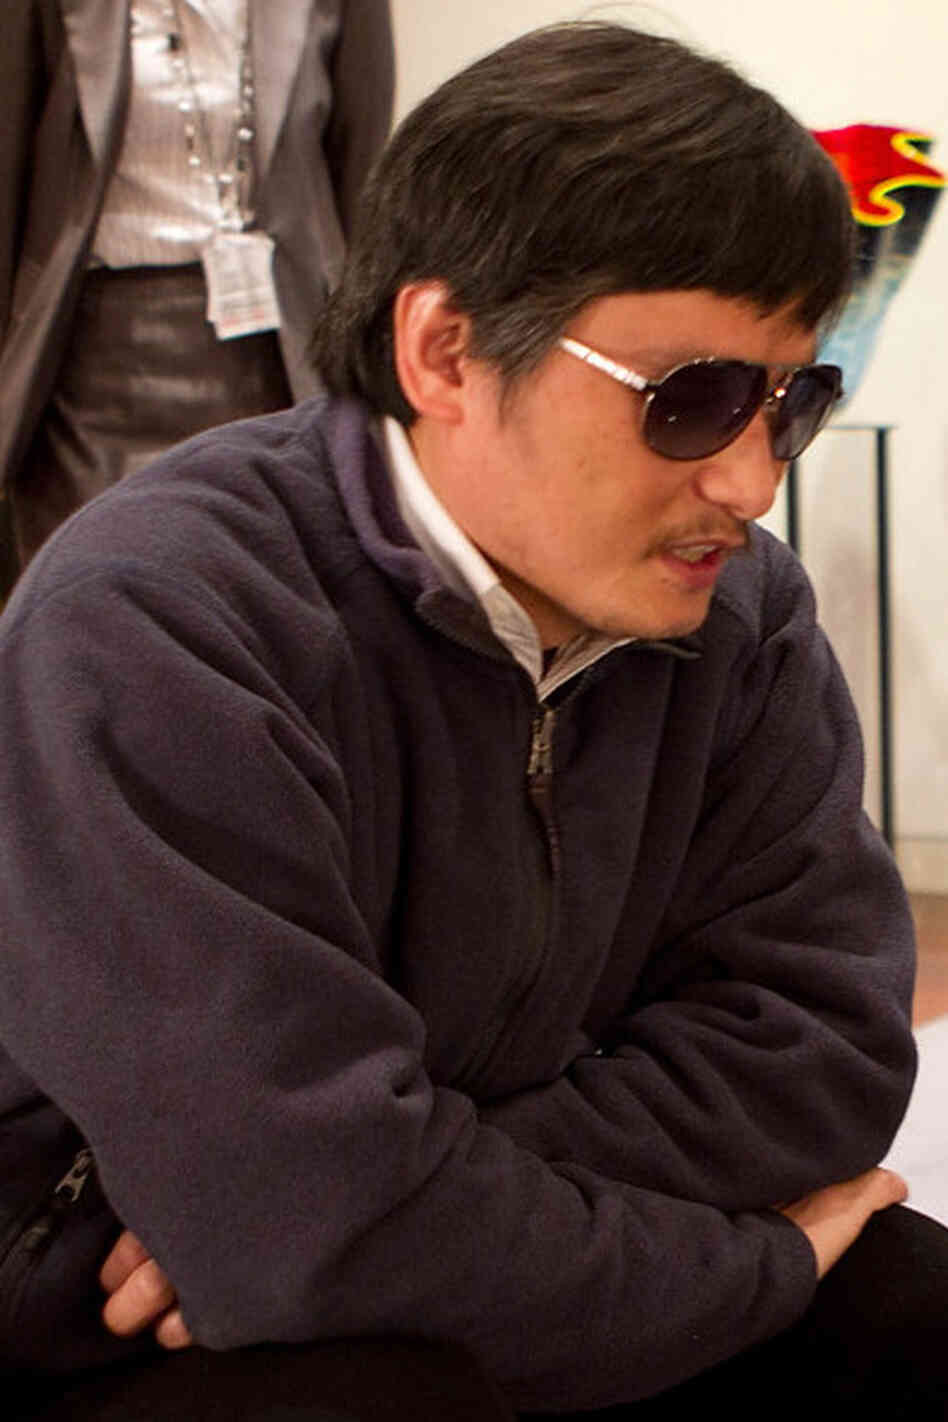 Chen Guangcheng just before he left the U.S. embassy in Beijing, on May 2.